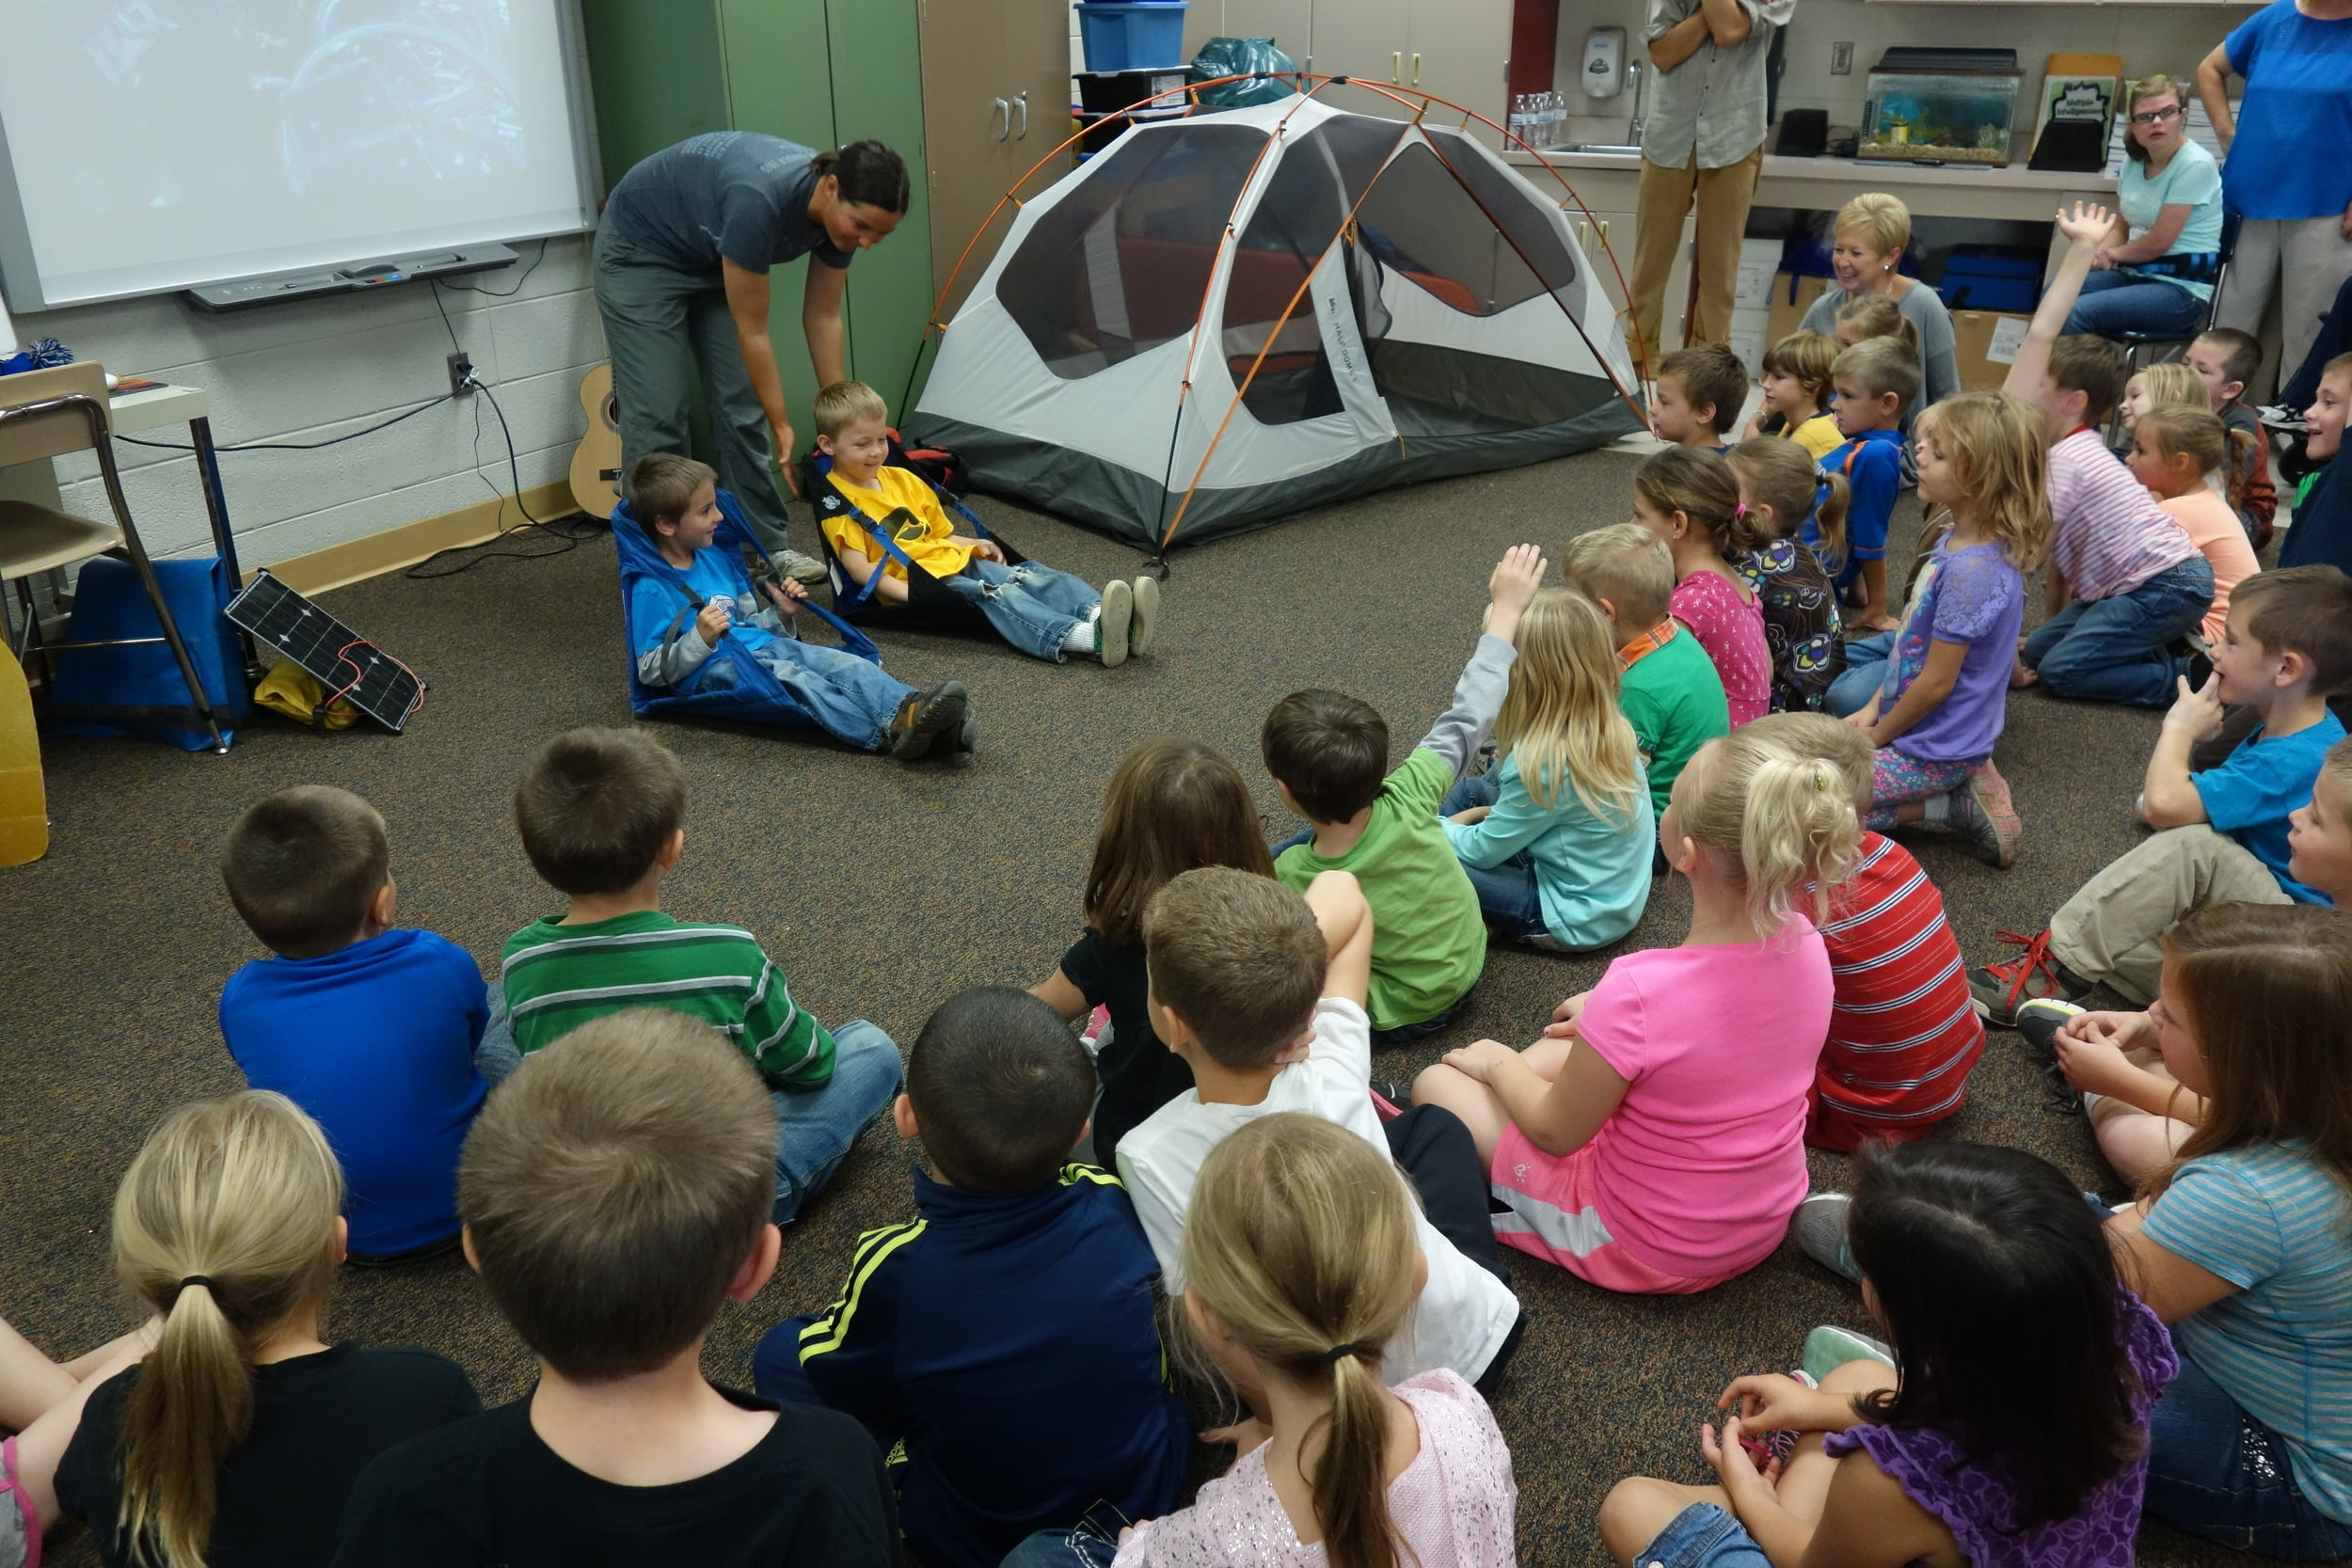 For kids that might not have access to camping gear, this is a great way to let them try it out and help them to begin to imagine ALL the possibilities.